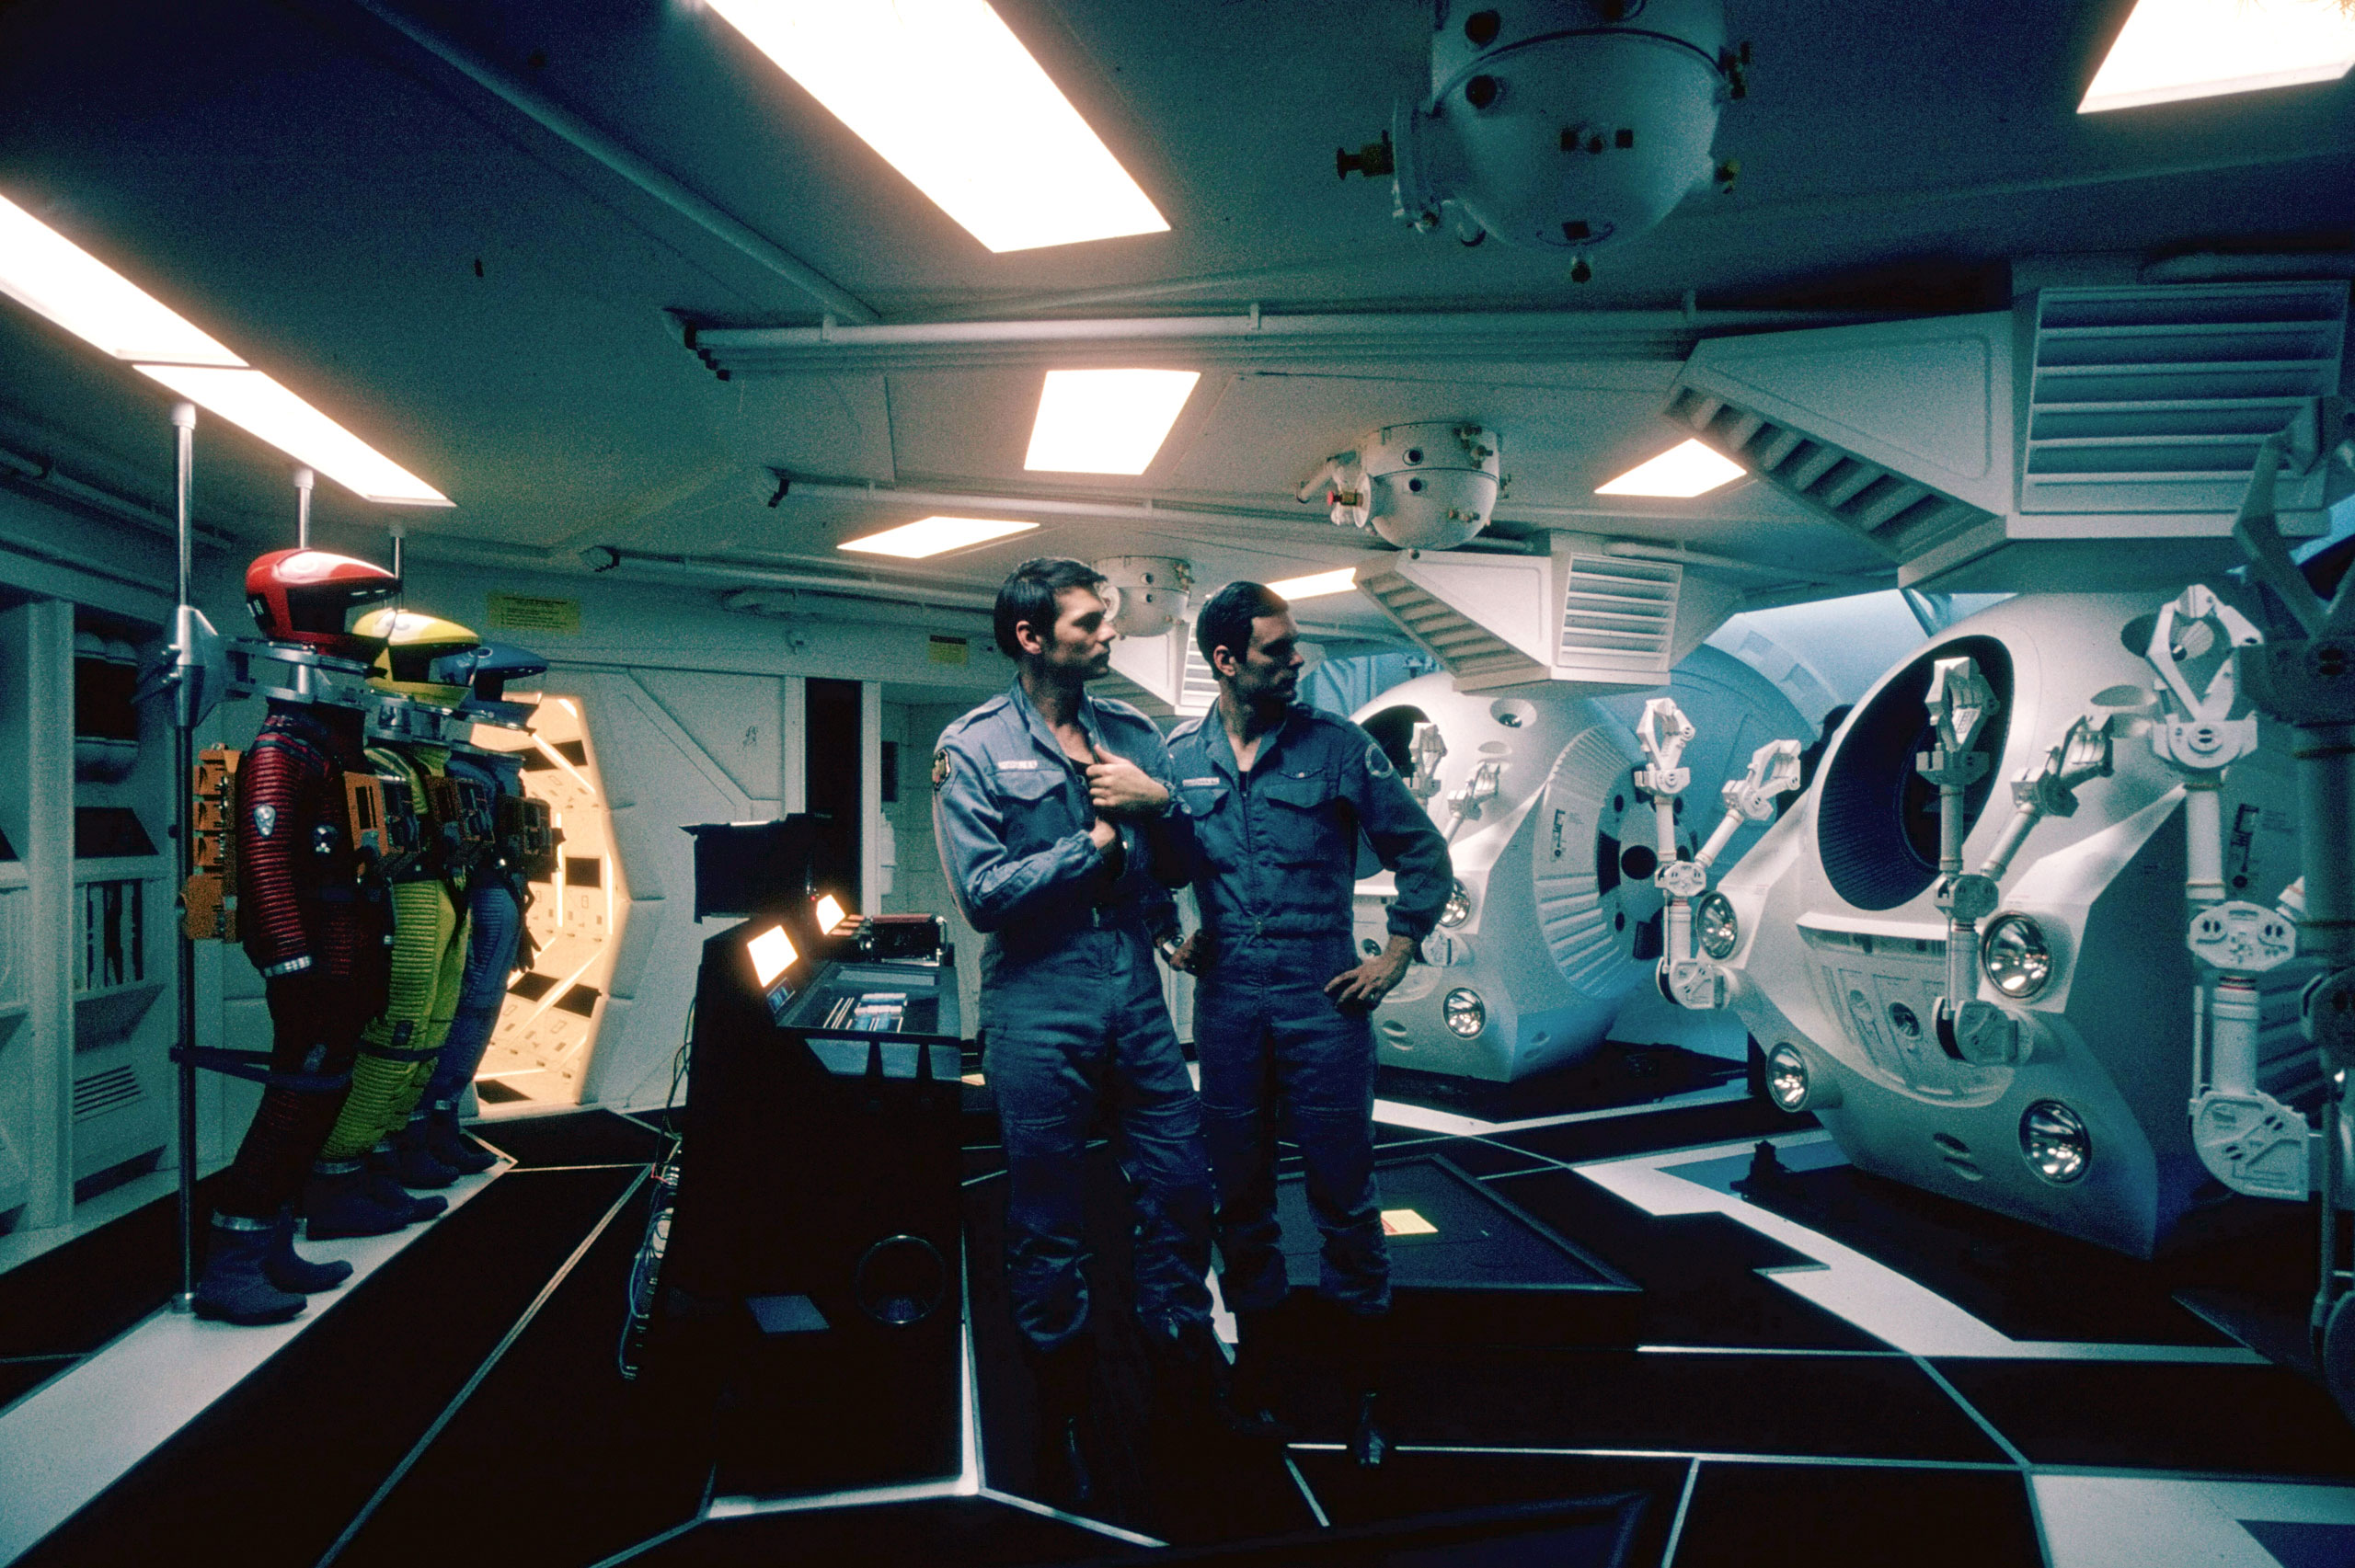 On the set of Stanley Kubrick's '2001: A Space Odyssey'